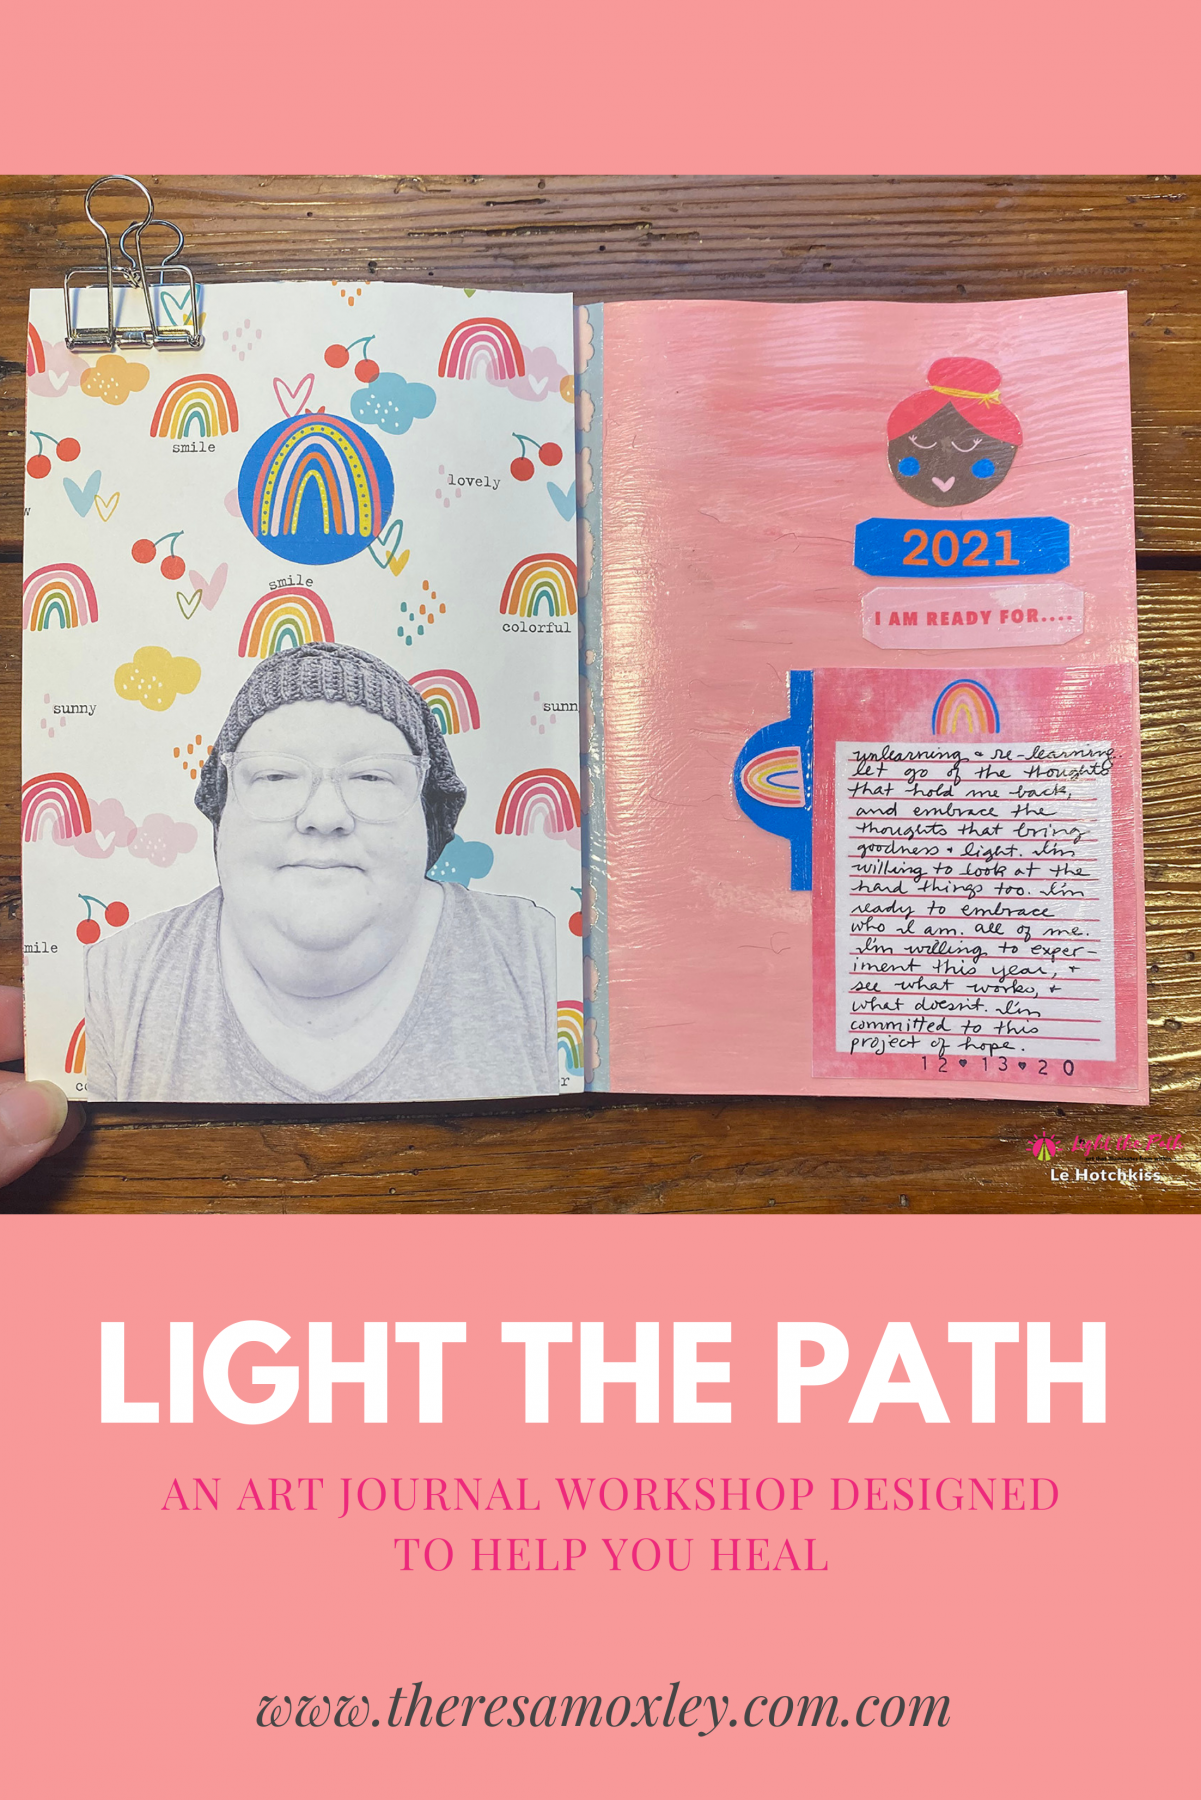 Light the Path Design Team Le Hotchkiss | I'm Ready!